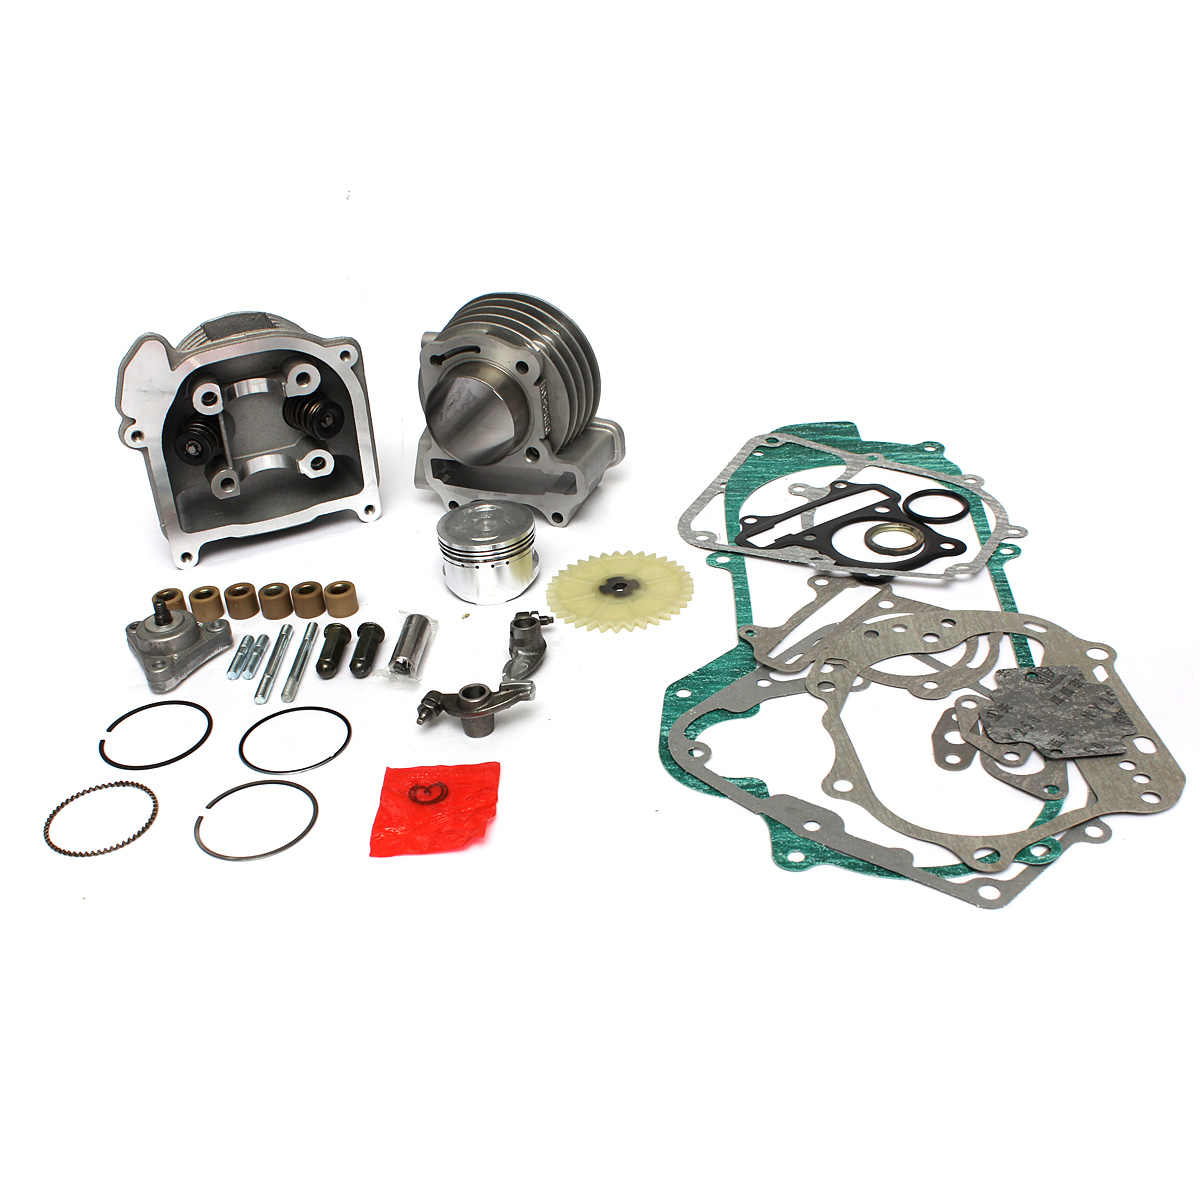 GY6 100cc 50cc 139QMB 50 Mm Big Bore Kinerja Cyinder Kit Cina Scooter Parts